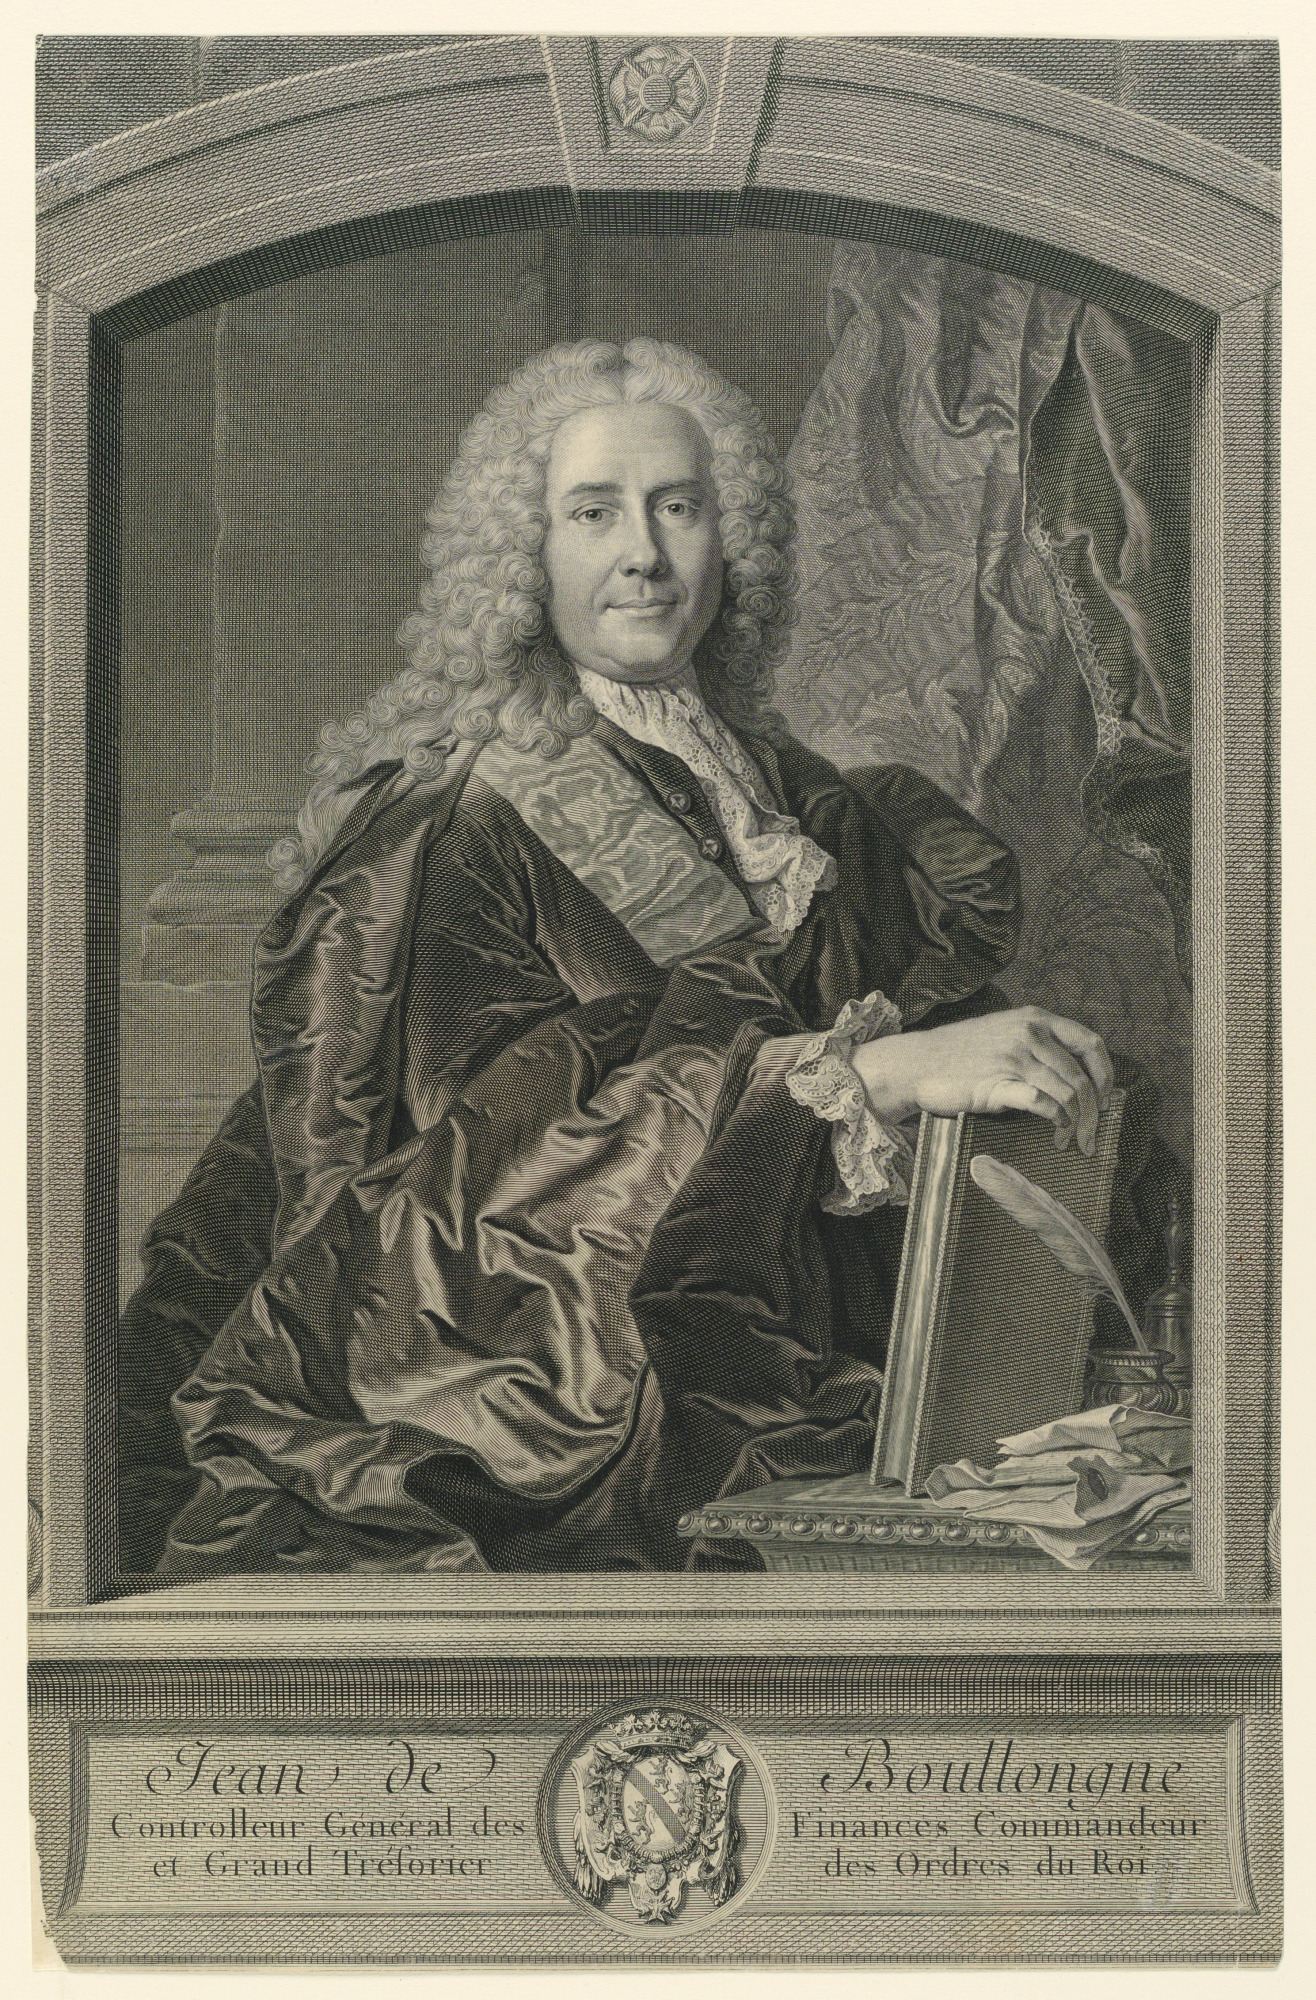 Portrait of Jean de Boullongue